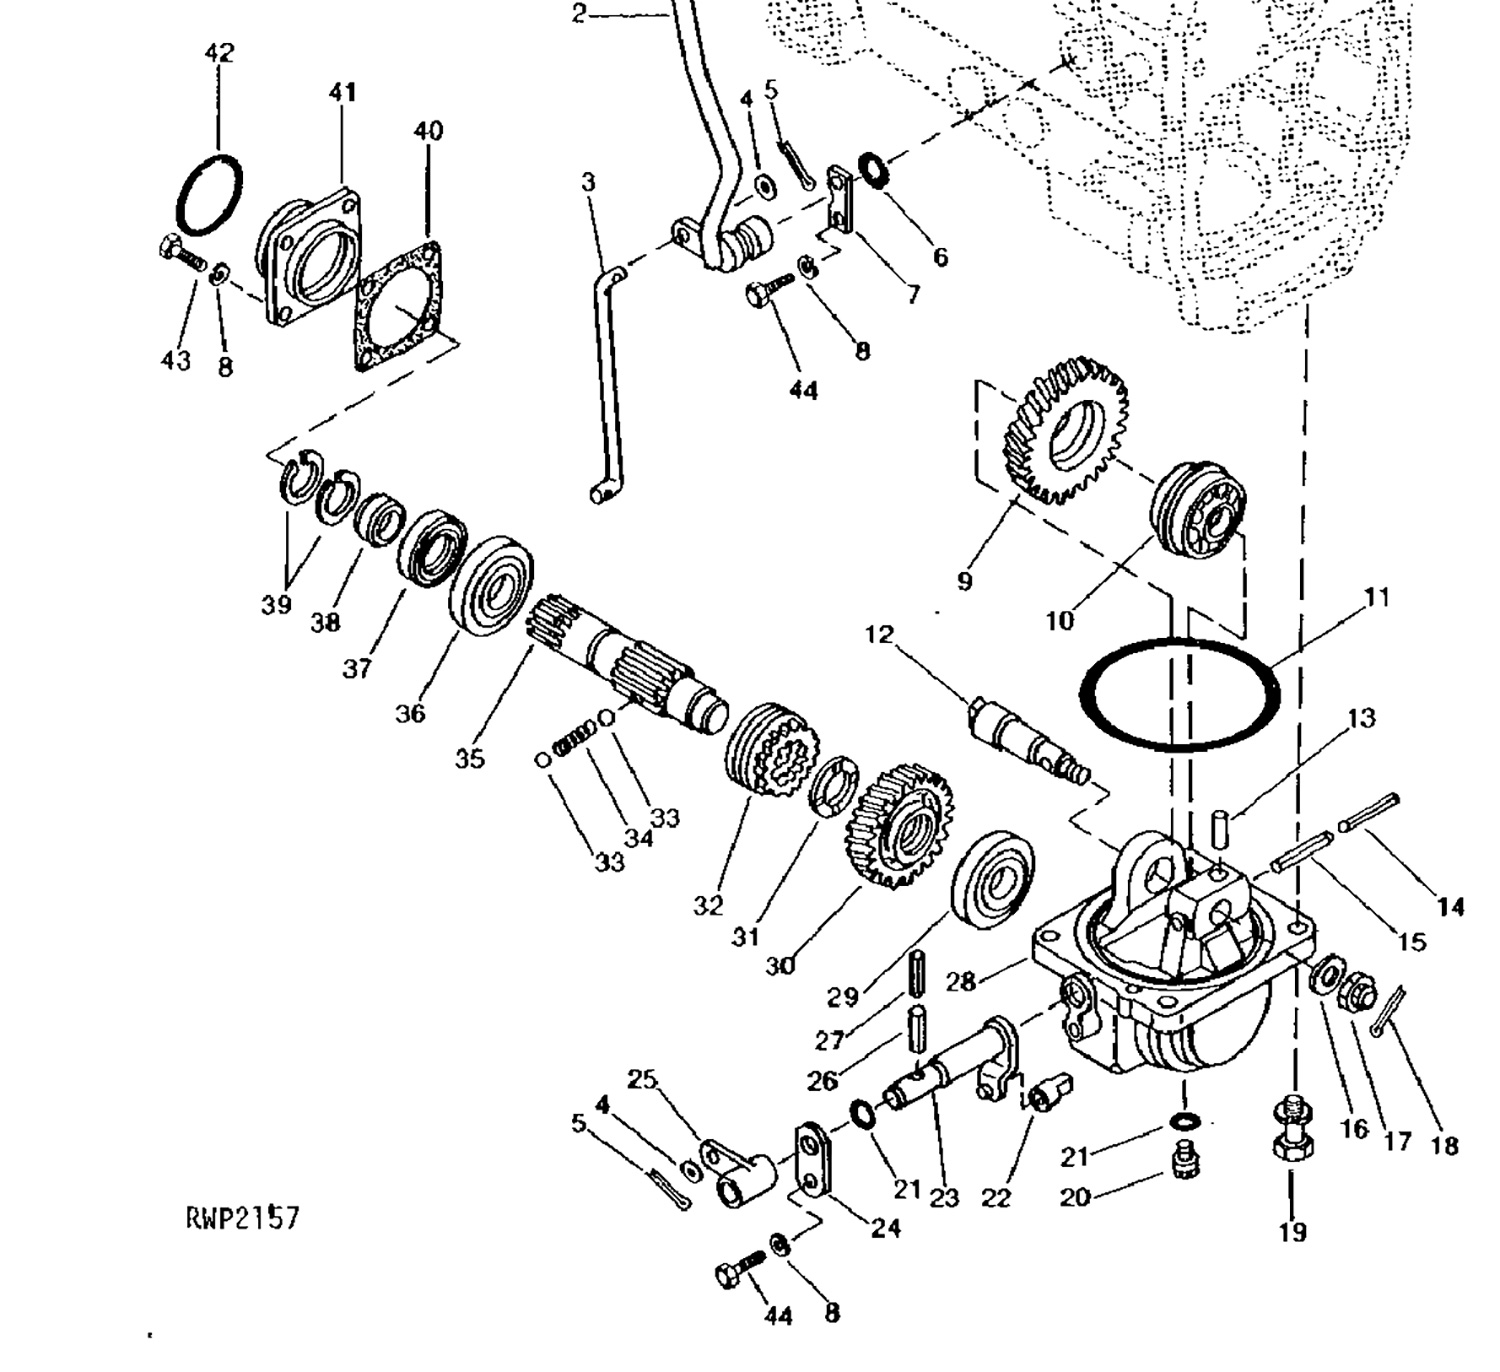 Diagram  John Deere 310 Backhoe Wiring Diagram Full